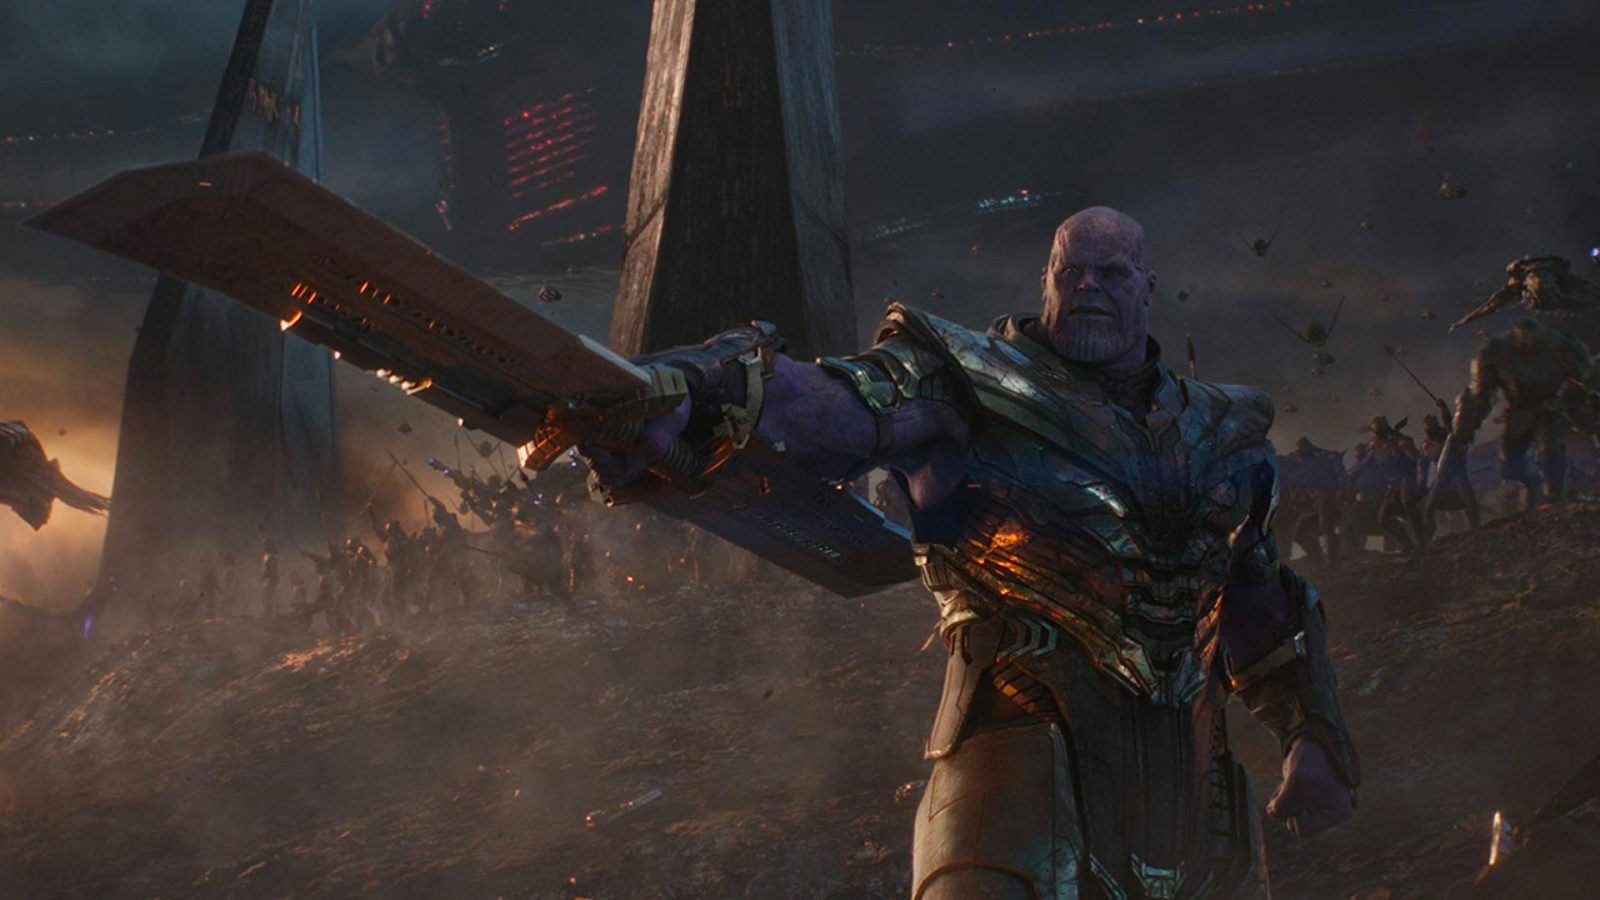 Avengers: Endgame sees first discounts from $18, more 4K starting at $15